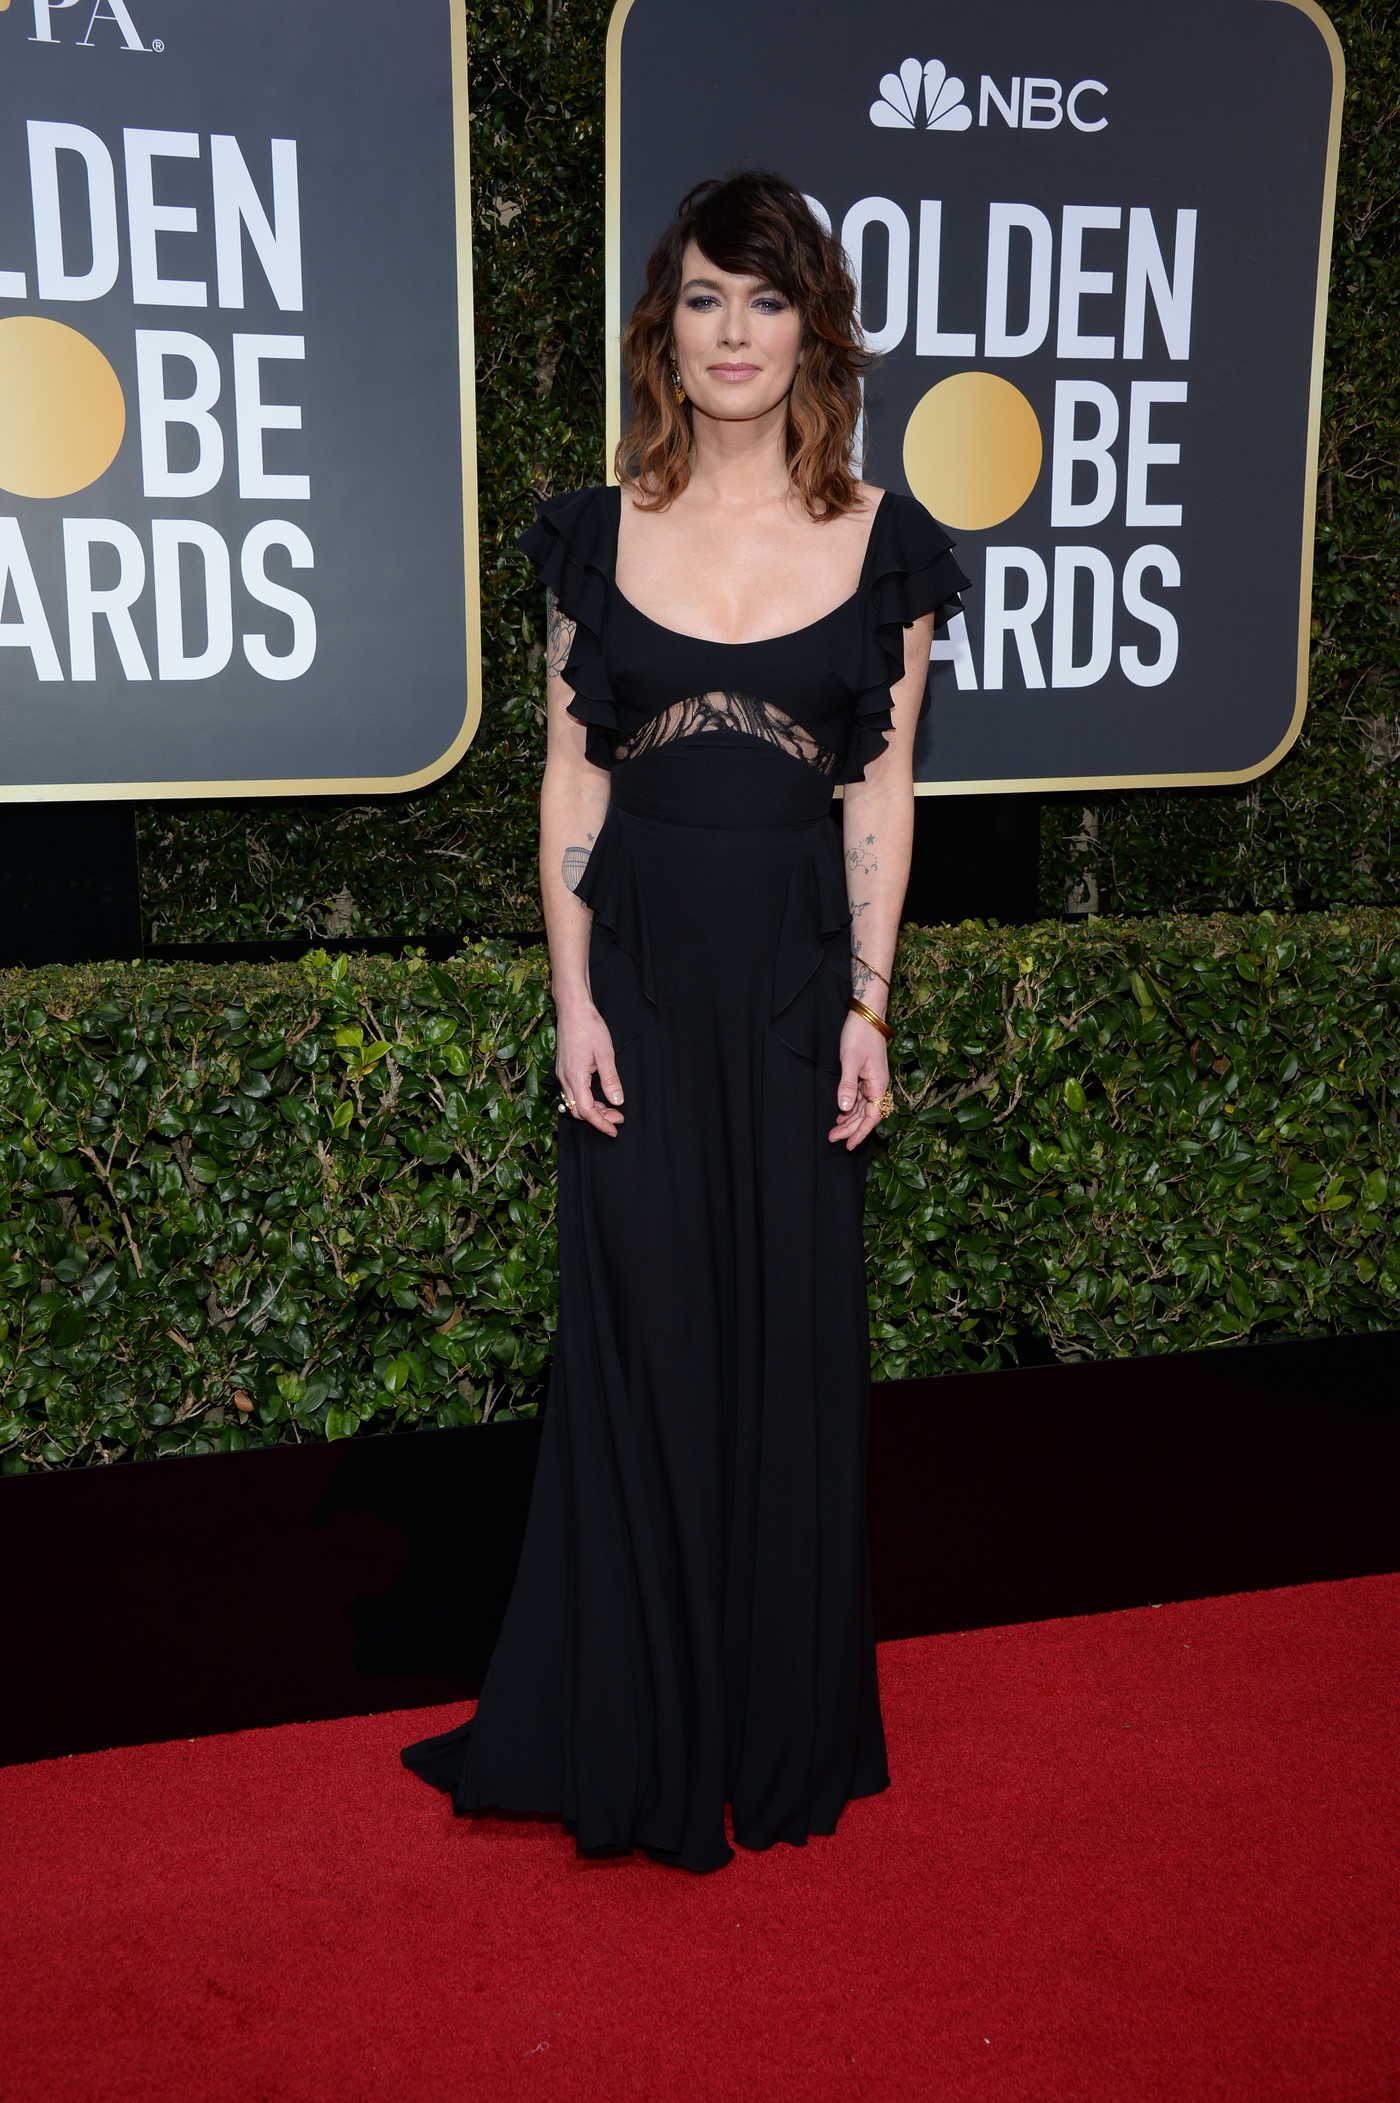 Lena Headey at the 75th Annual Golden Globe Awards in Beverly Hills 01/07/2018